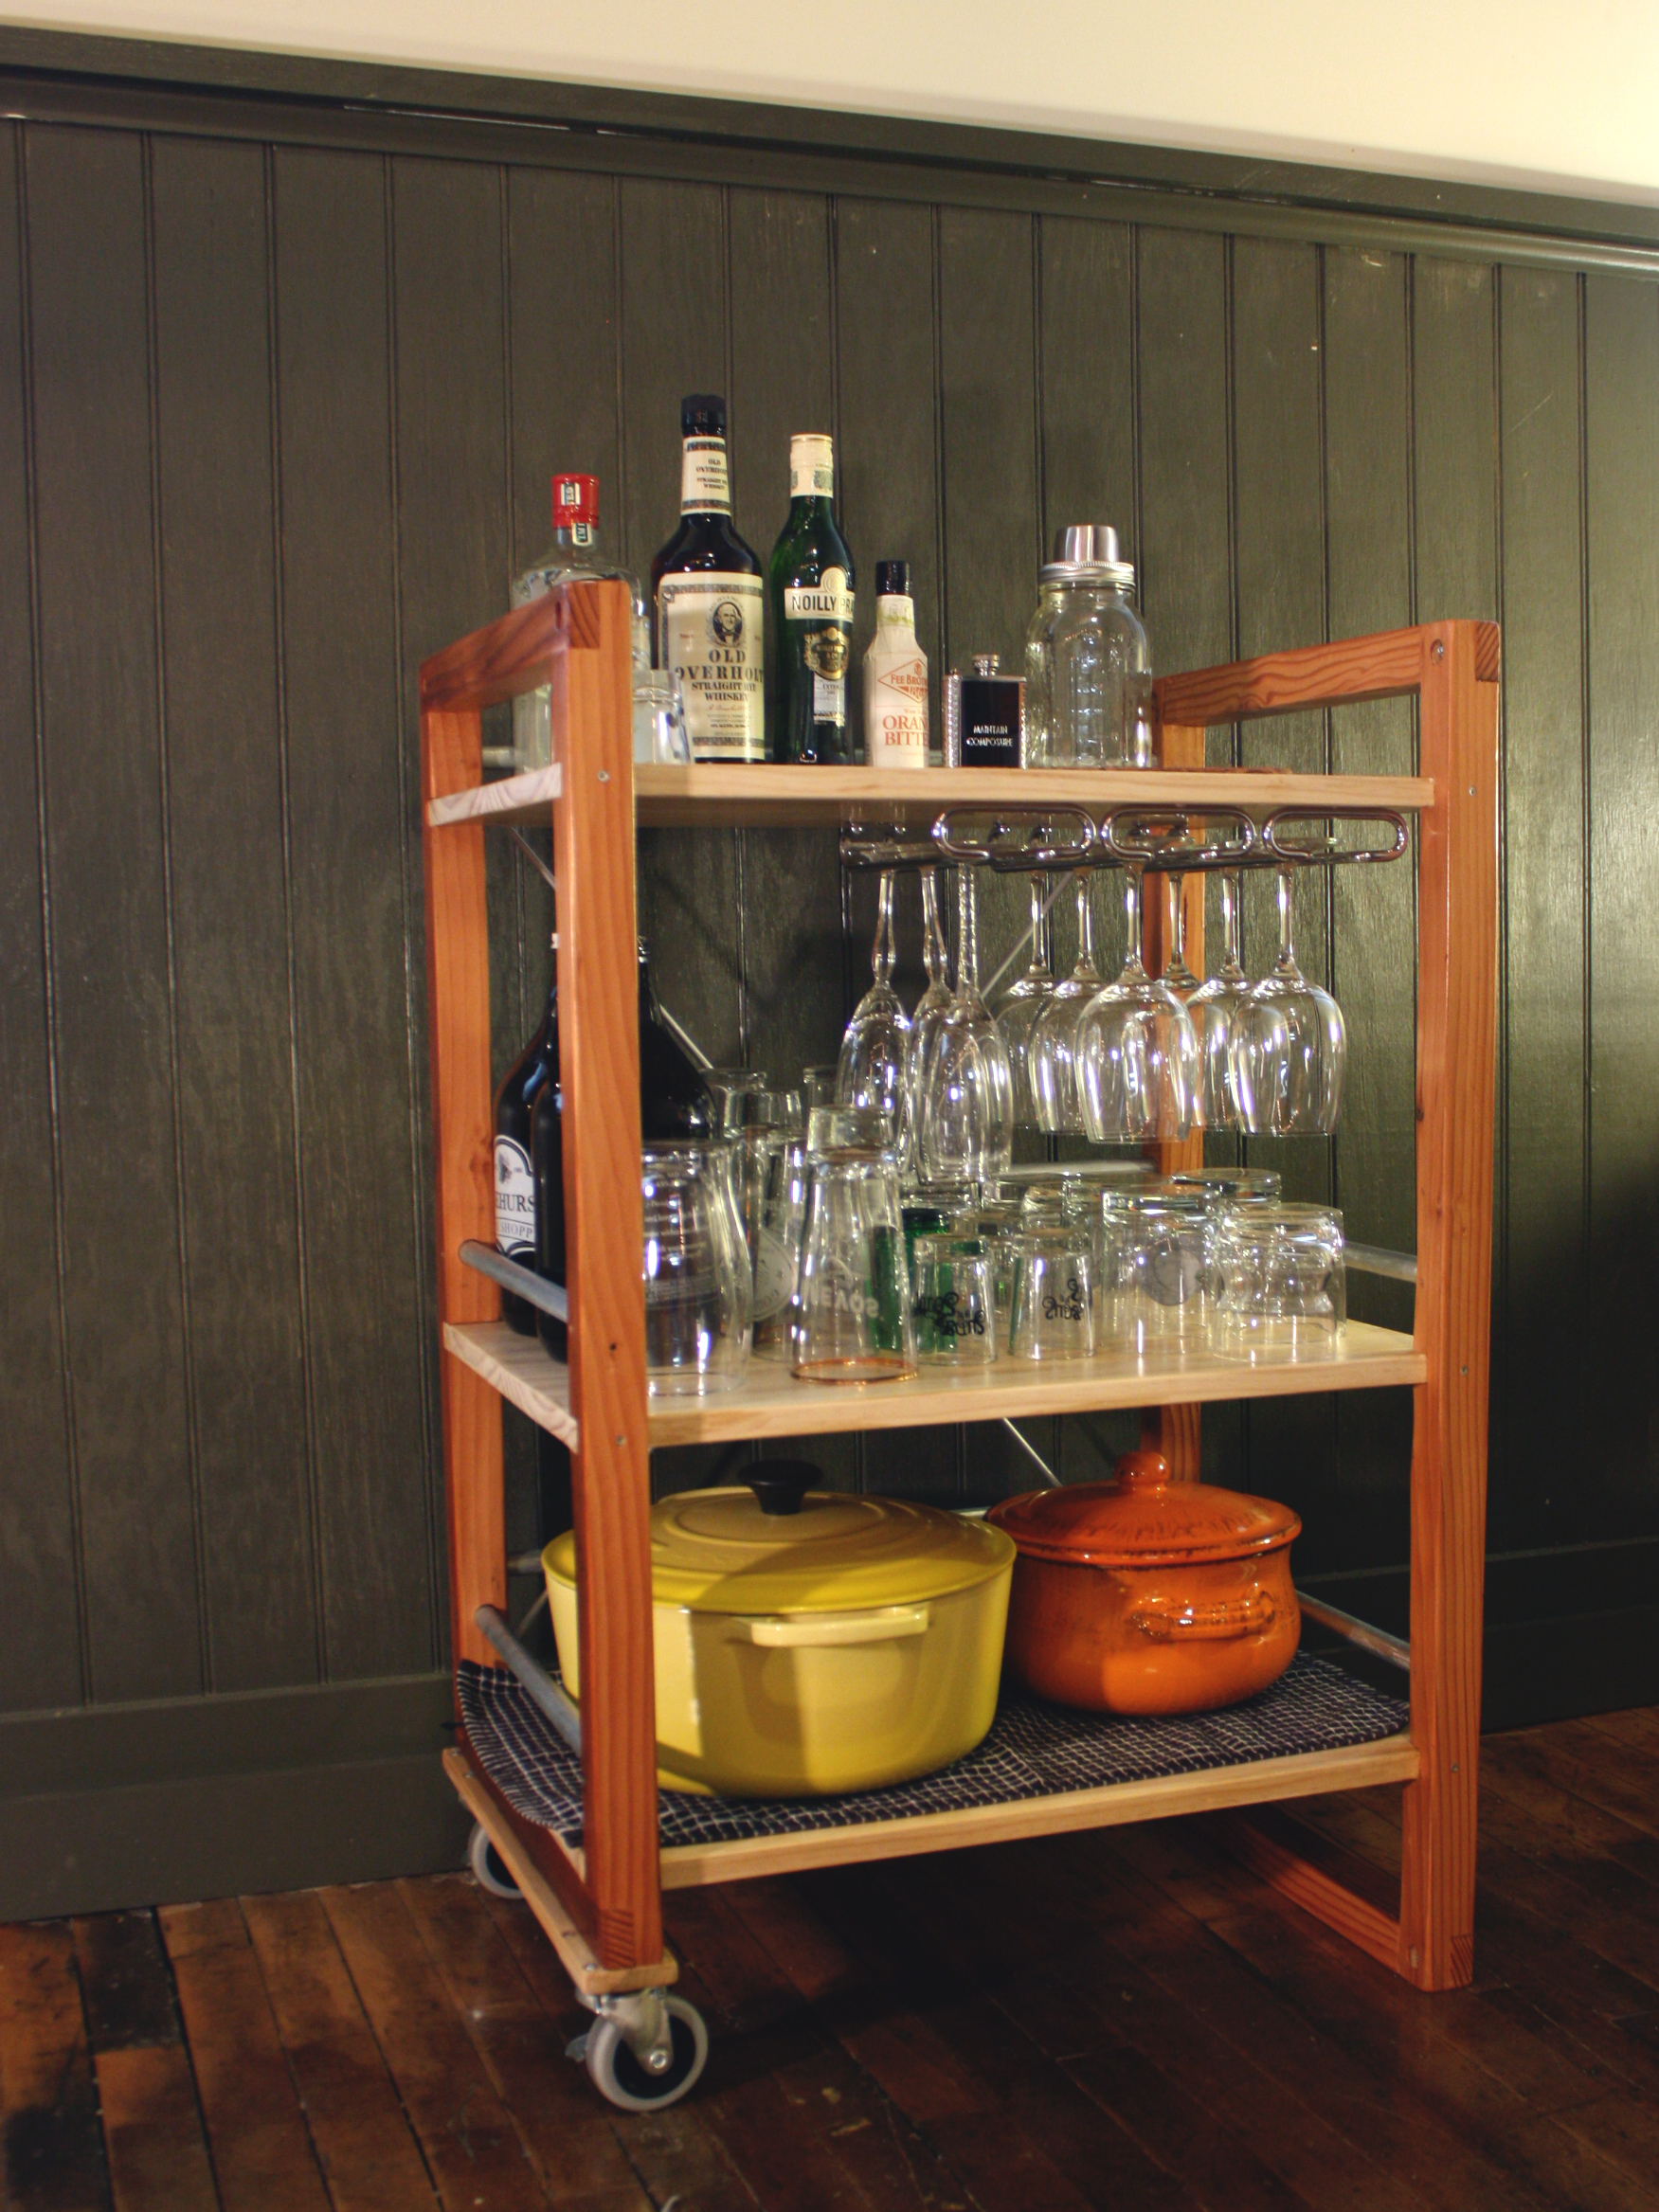 Space between shelves was determined by dimensions of barware.